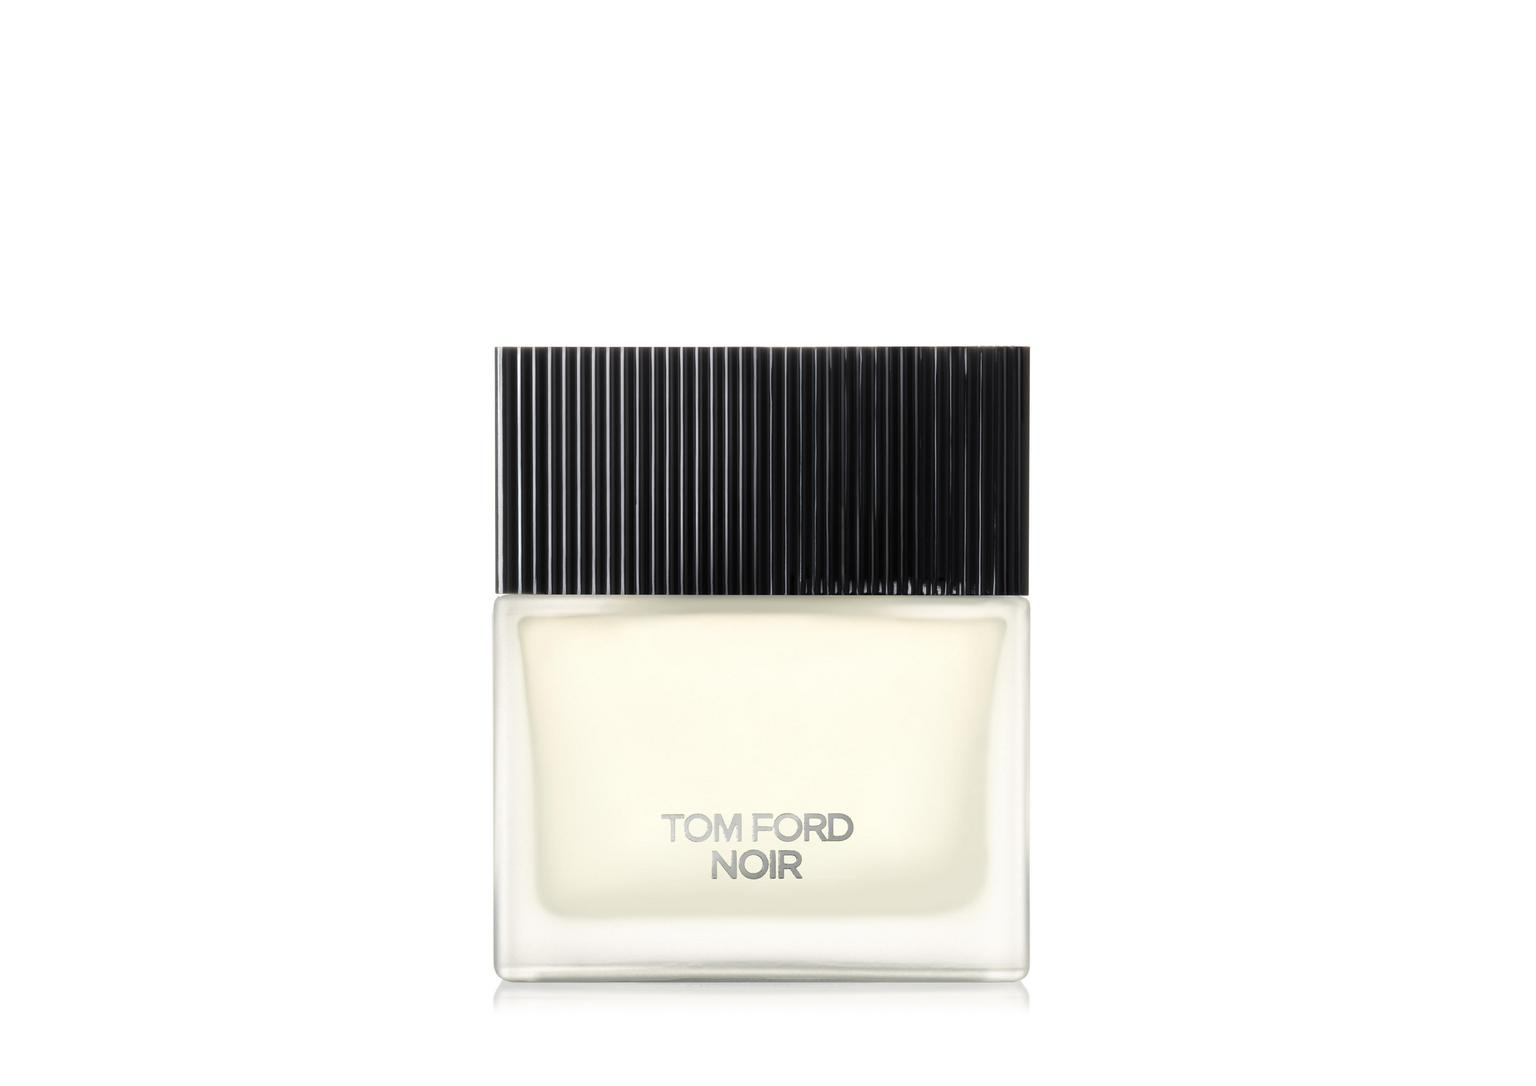 Tom Ford Noir Edt Spray